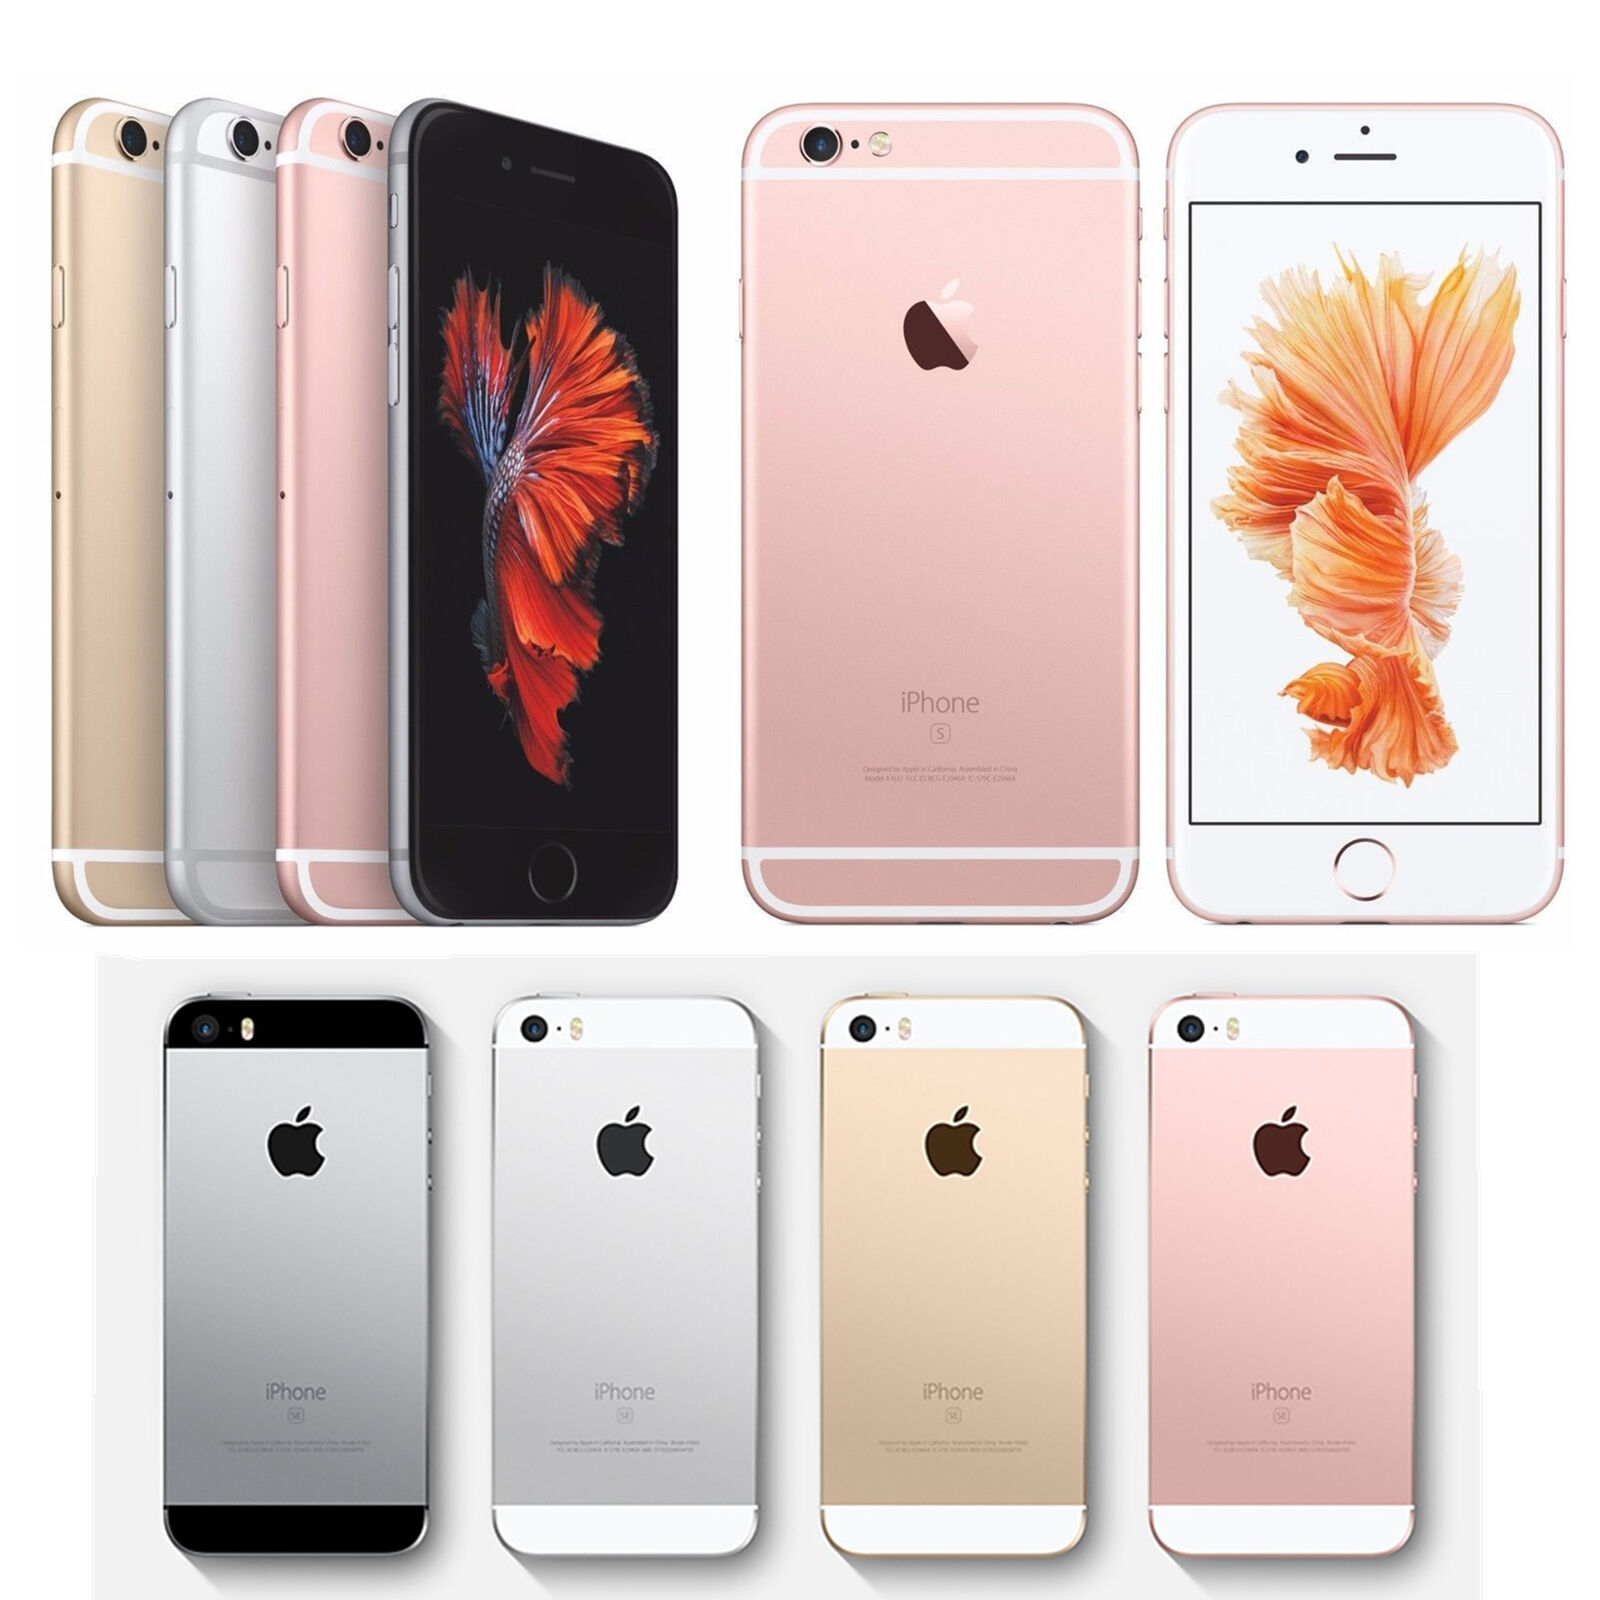 apple iphone 6s plus 6 plus 6 5s 5c factory unlocked gray silver gold rose gold. Black Bedroom Furniture Sets. Home Design Ideas